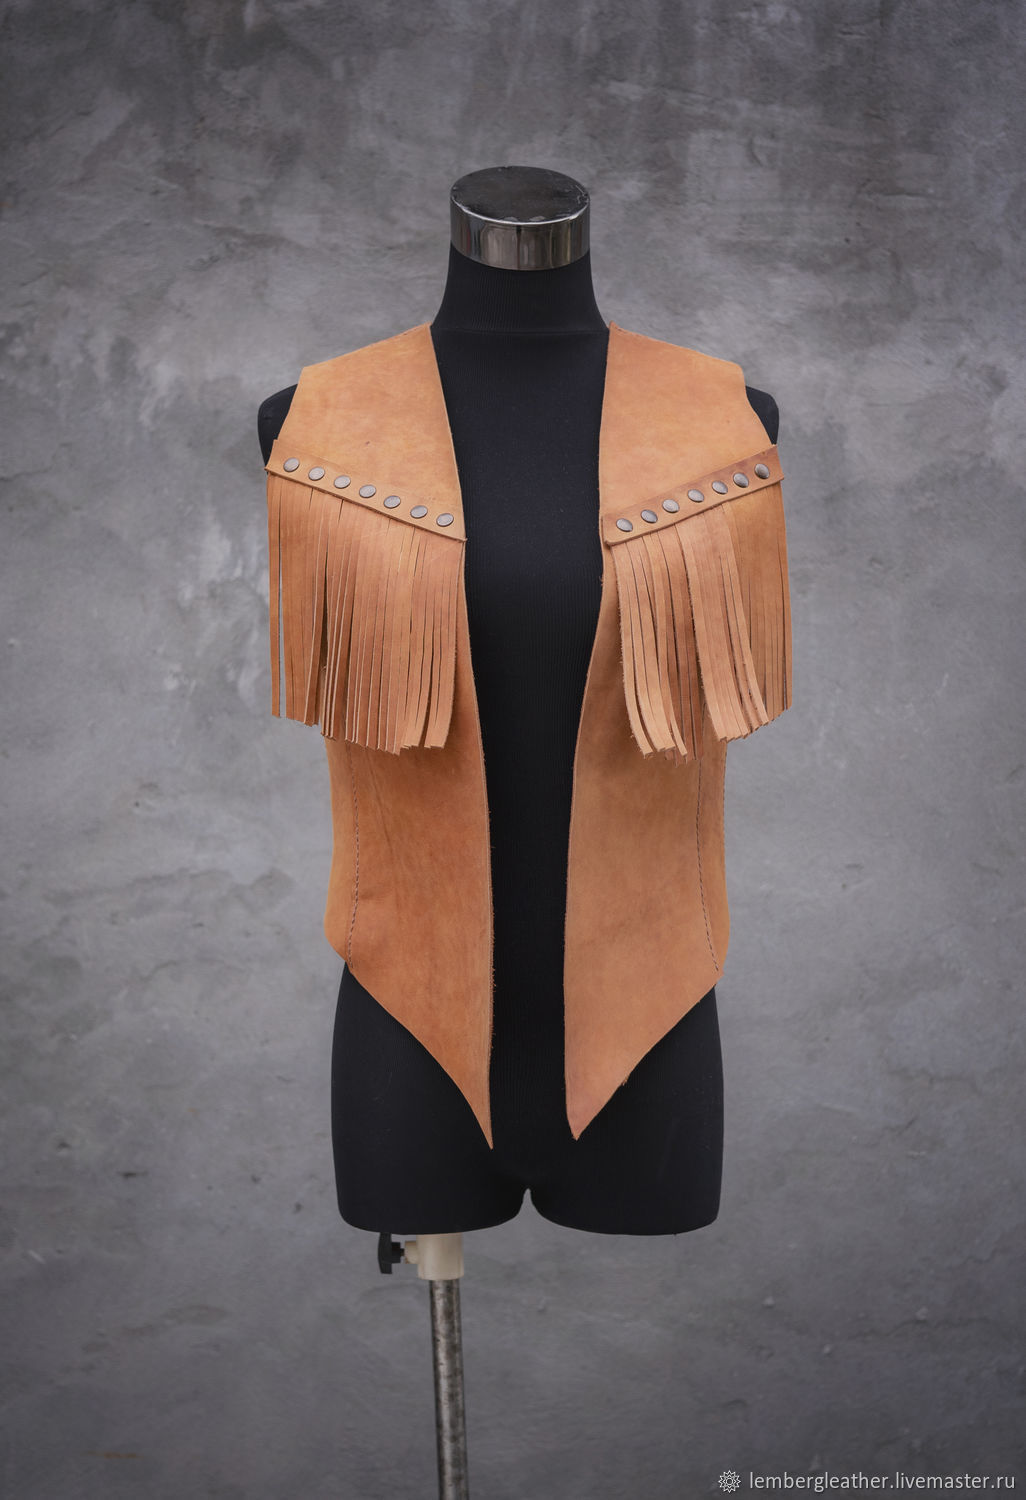 Women's leather vest (possible engraving), leather vest, Vests, Moscow,  Фото №1